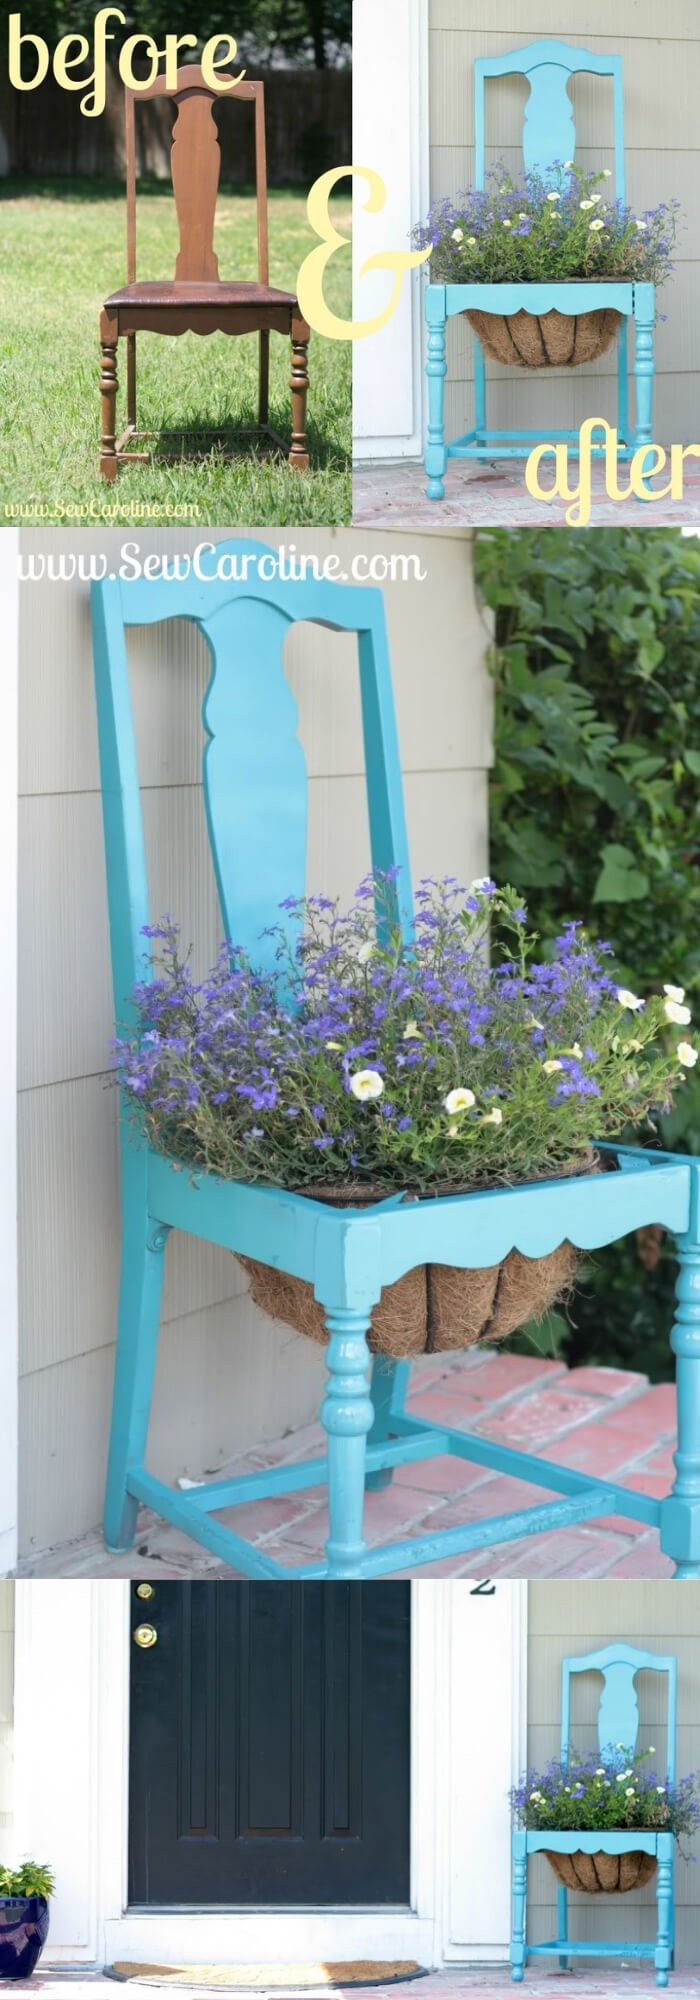 Before and After DIY Chair Planter | Creative Upcycled DIY Chair Planter Ideas For Your Garden